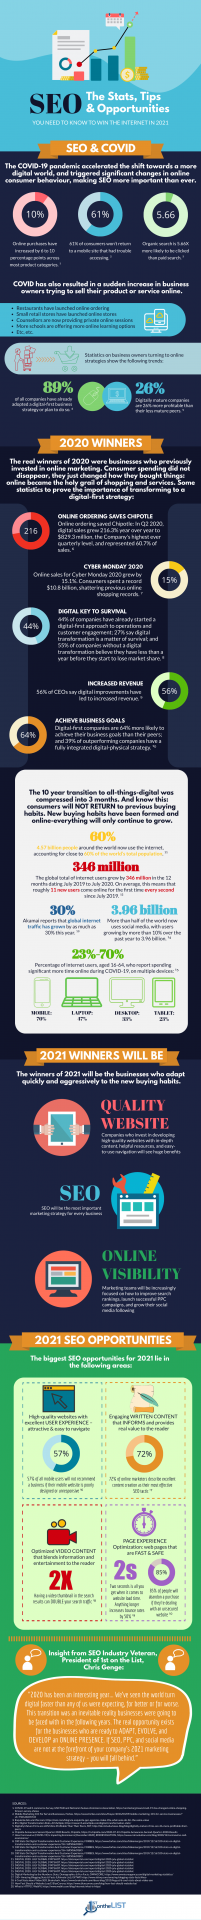 seo for 2021 infographic